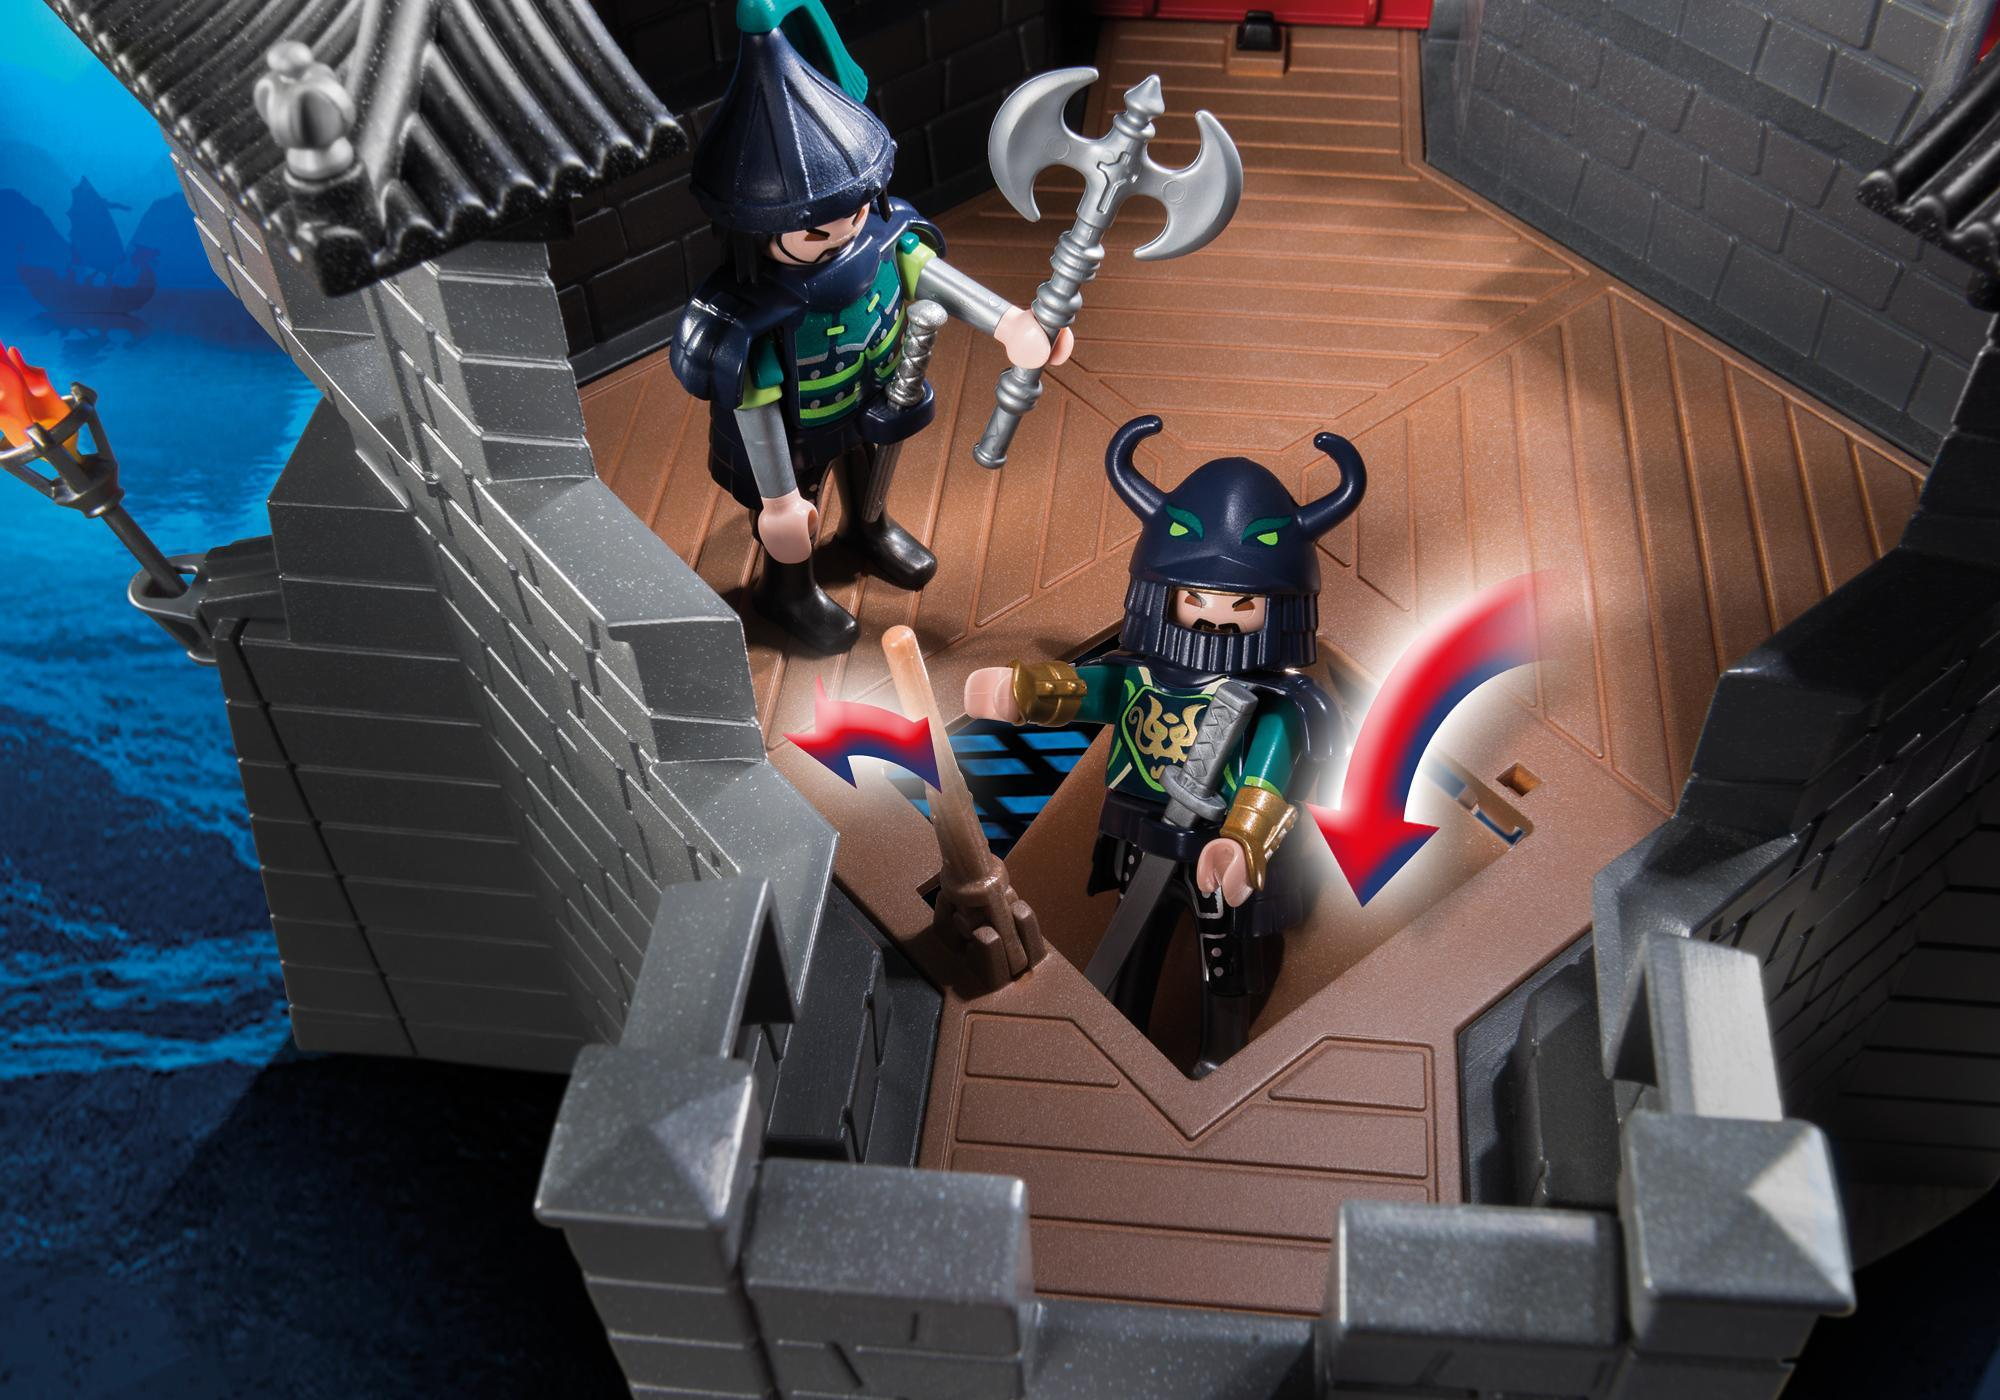 http://media.playmobil.com/i/playmobil/5480_product_extra2/Geheime Drachenfestung